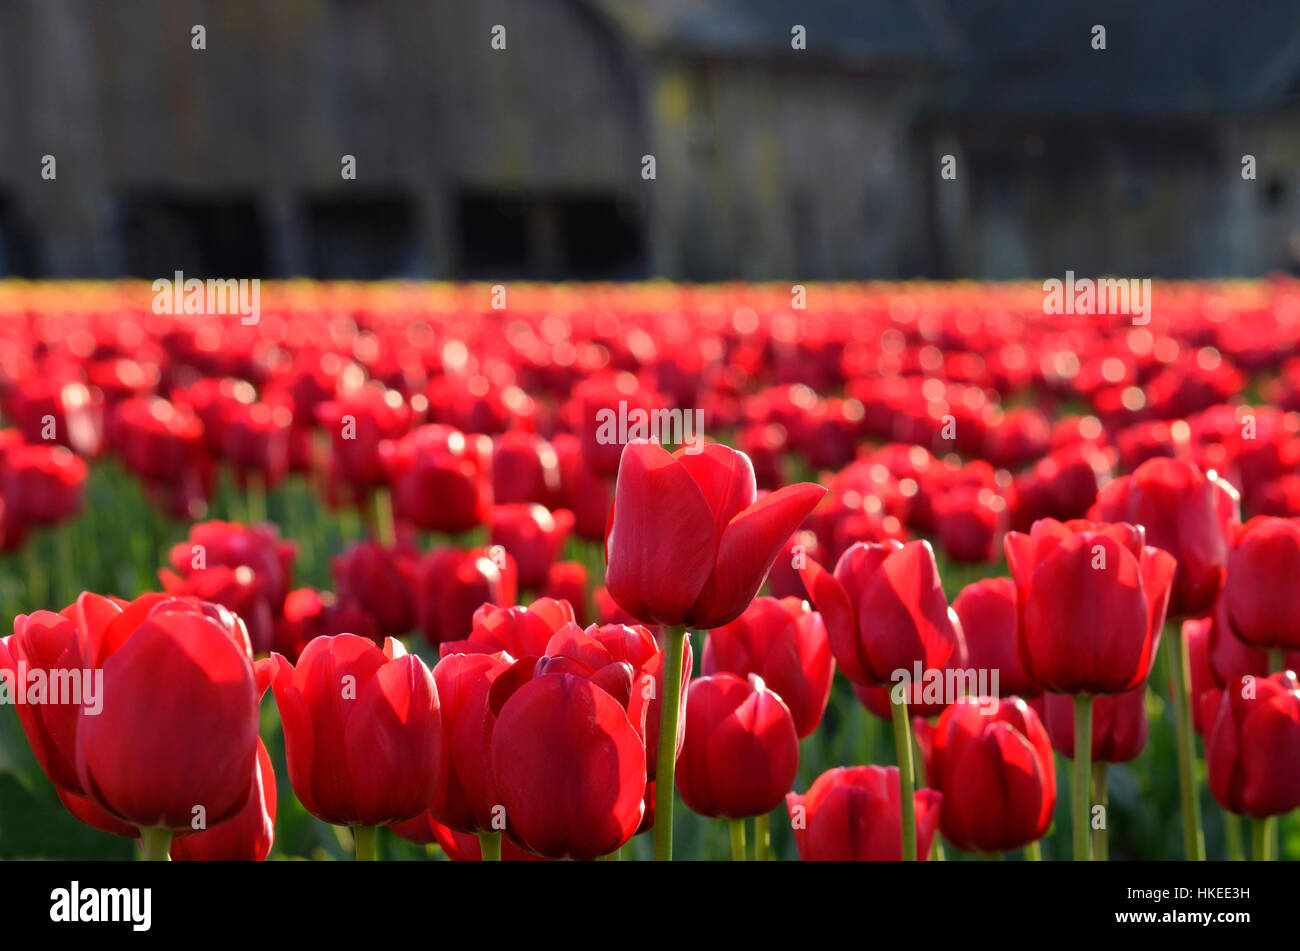 Field of red tulips in the Skagit Valley, Washington. Closeup of red tulip field with old barn in the background. - Stock Image